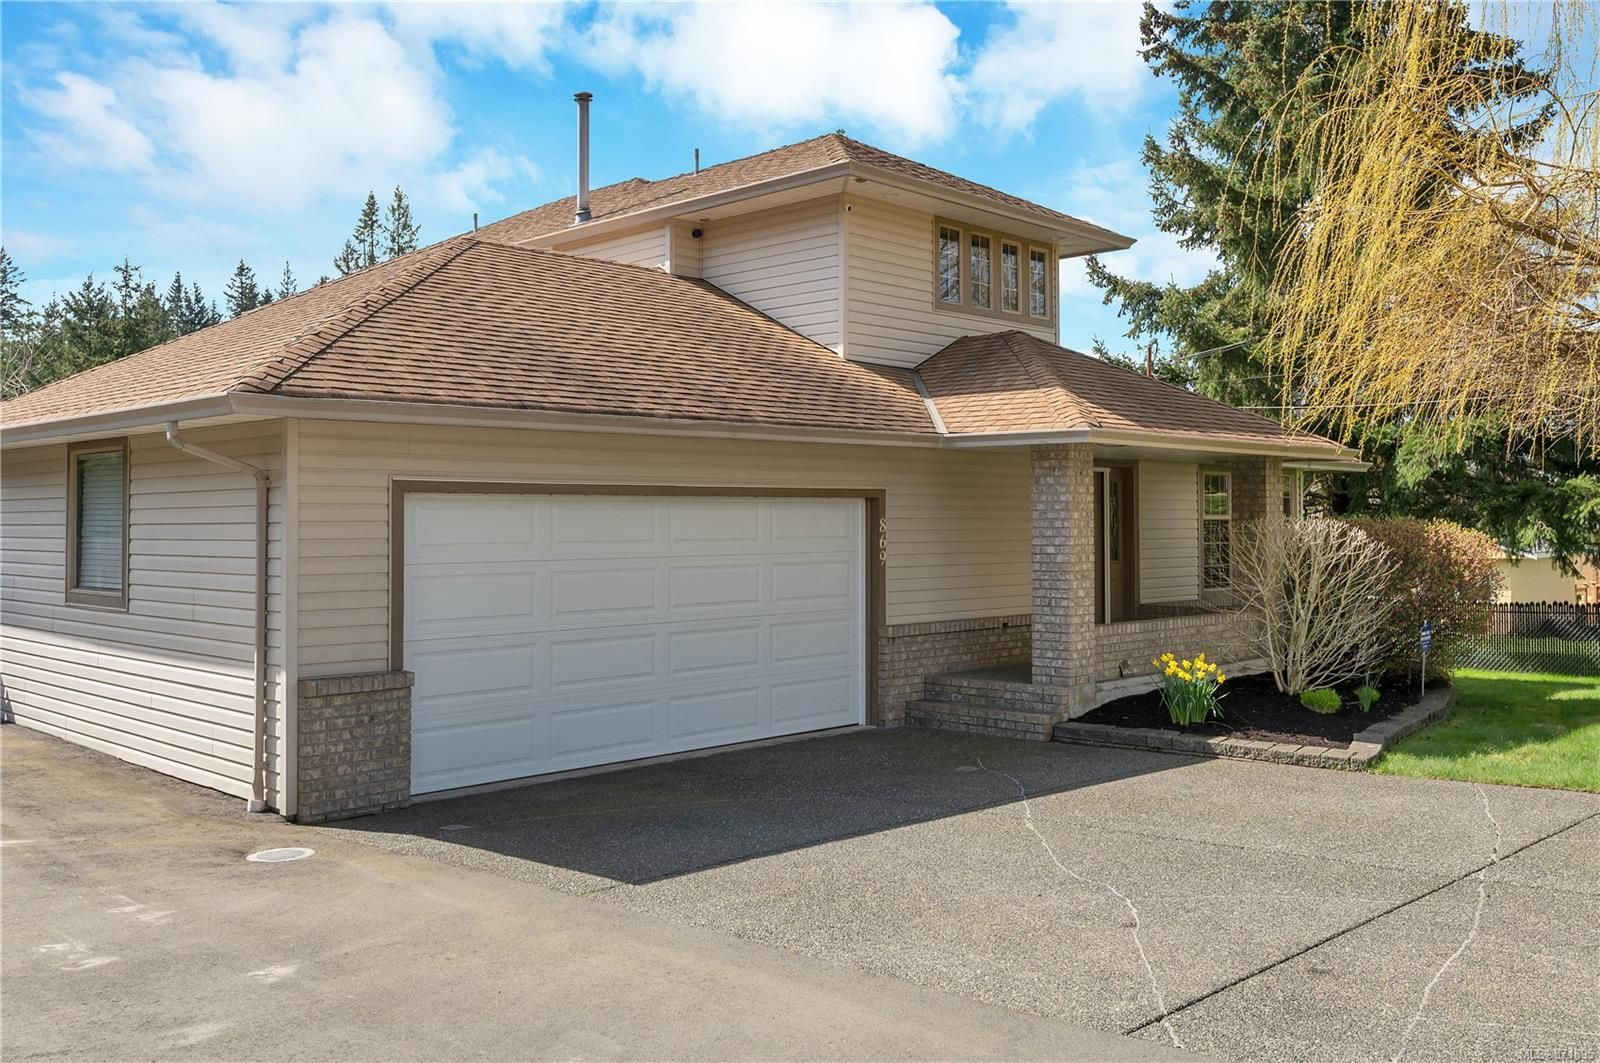 Main Photo: 869 Nicholls Rd in : CR Campbell River Central House for sale (Campbell River)  : MLS®# 871895